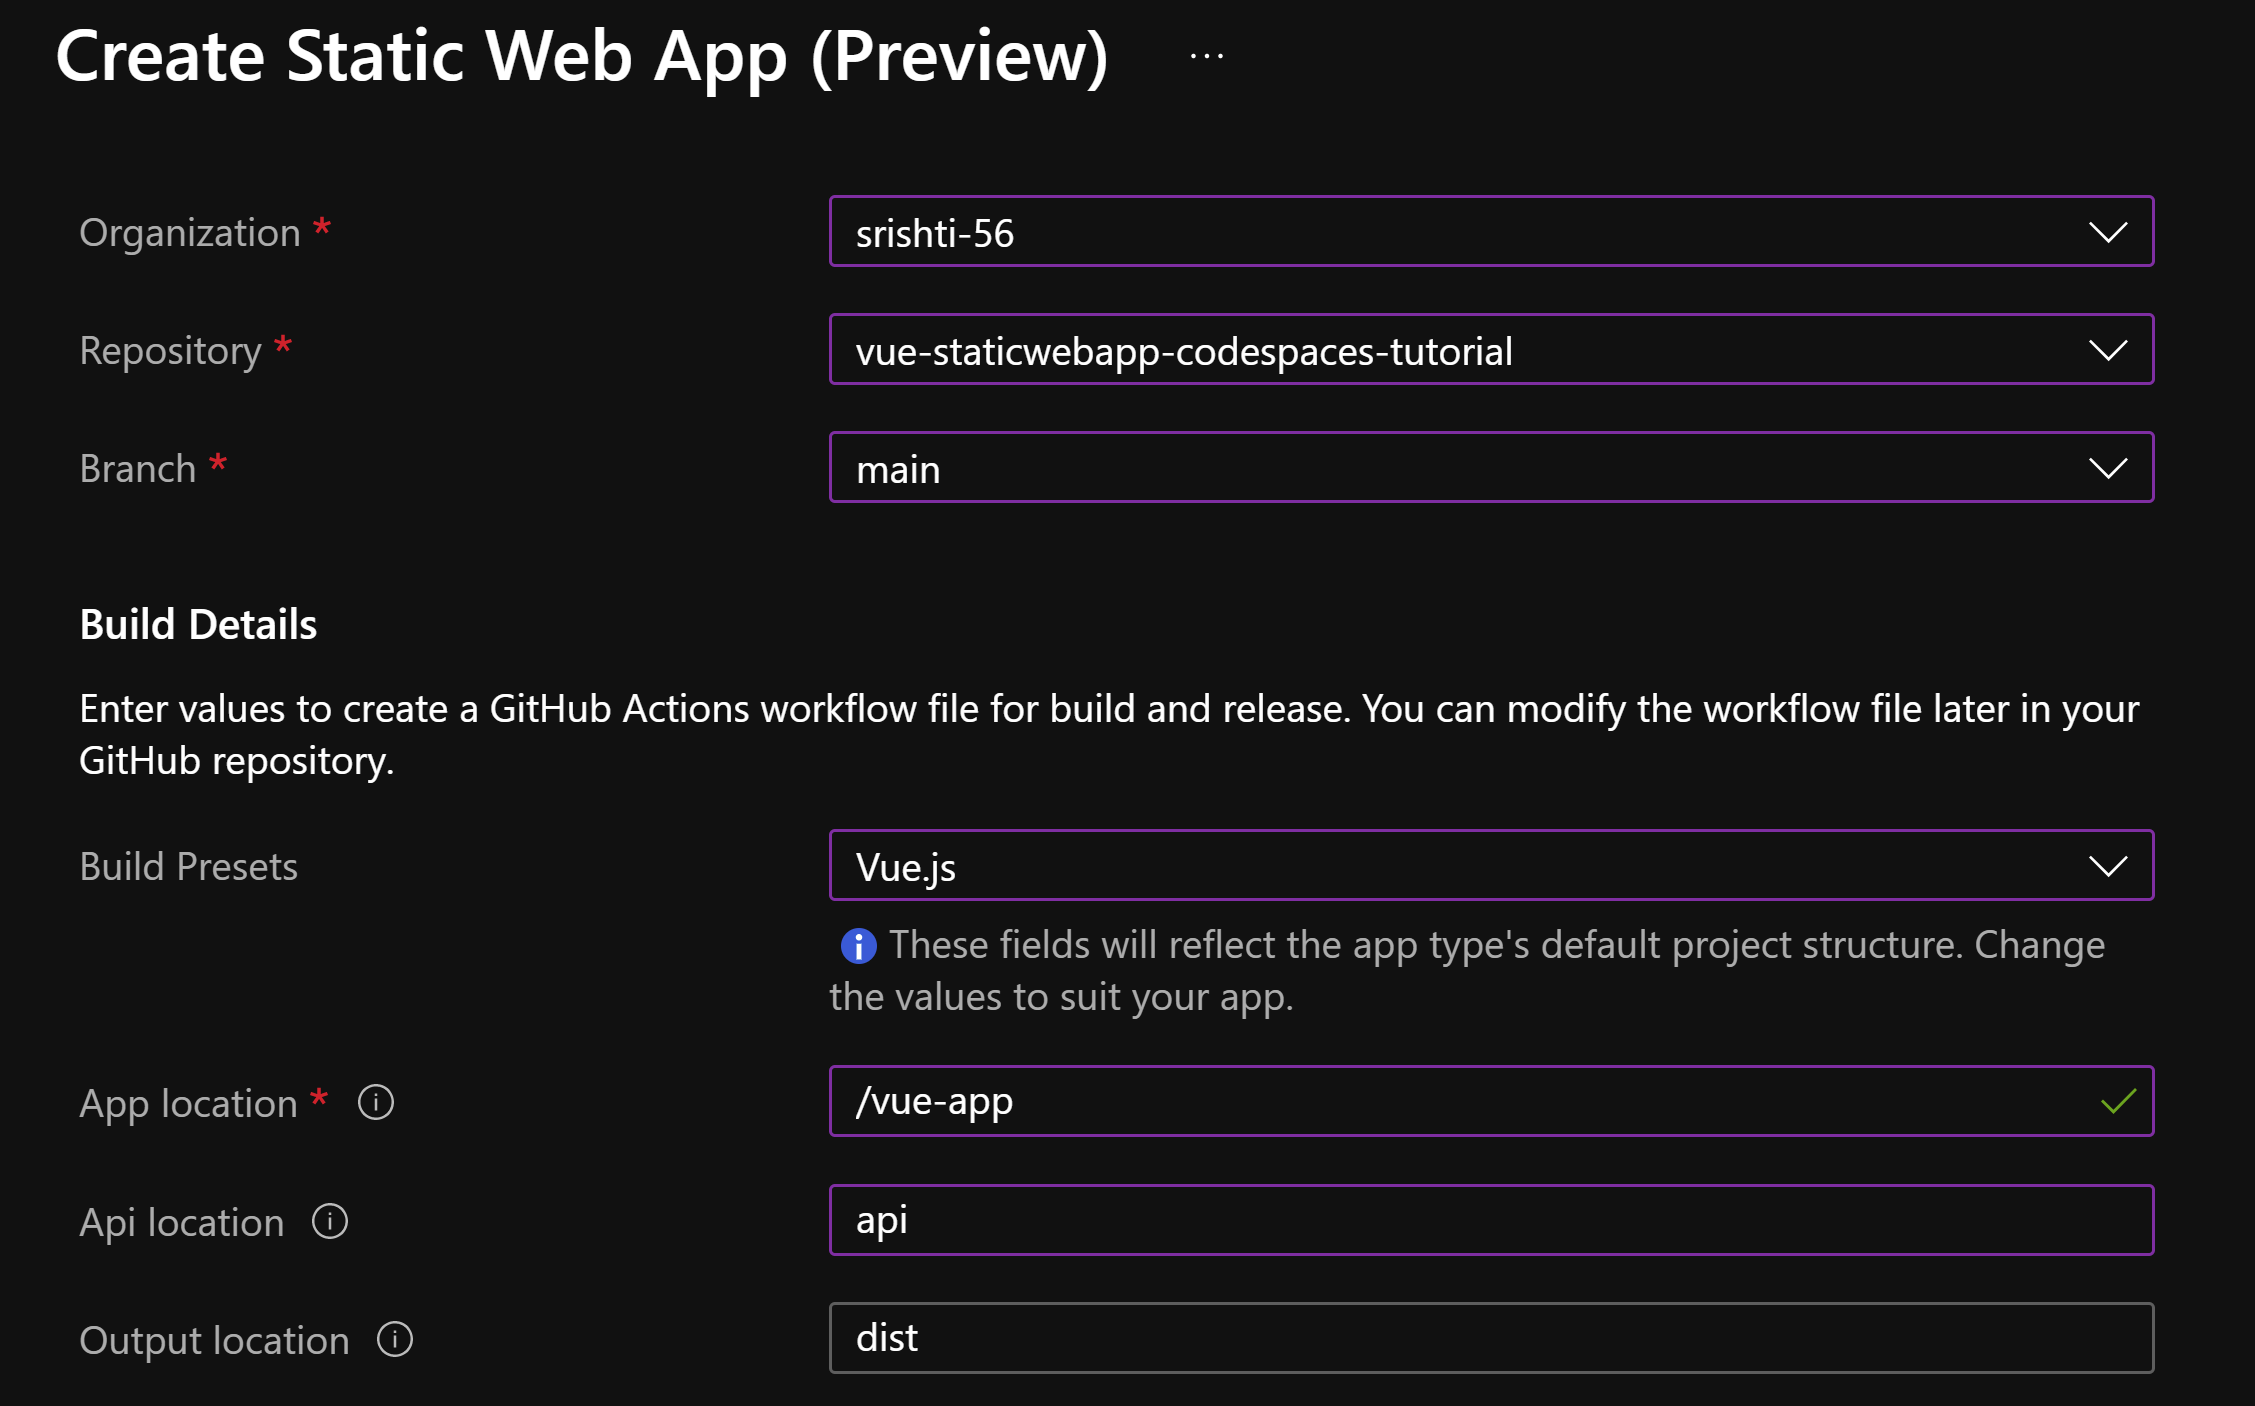 Sample of Create Static Web App (Preview) page from Azure with fields auto-filled with text already mentioned in blog post.